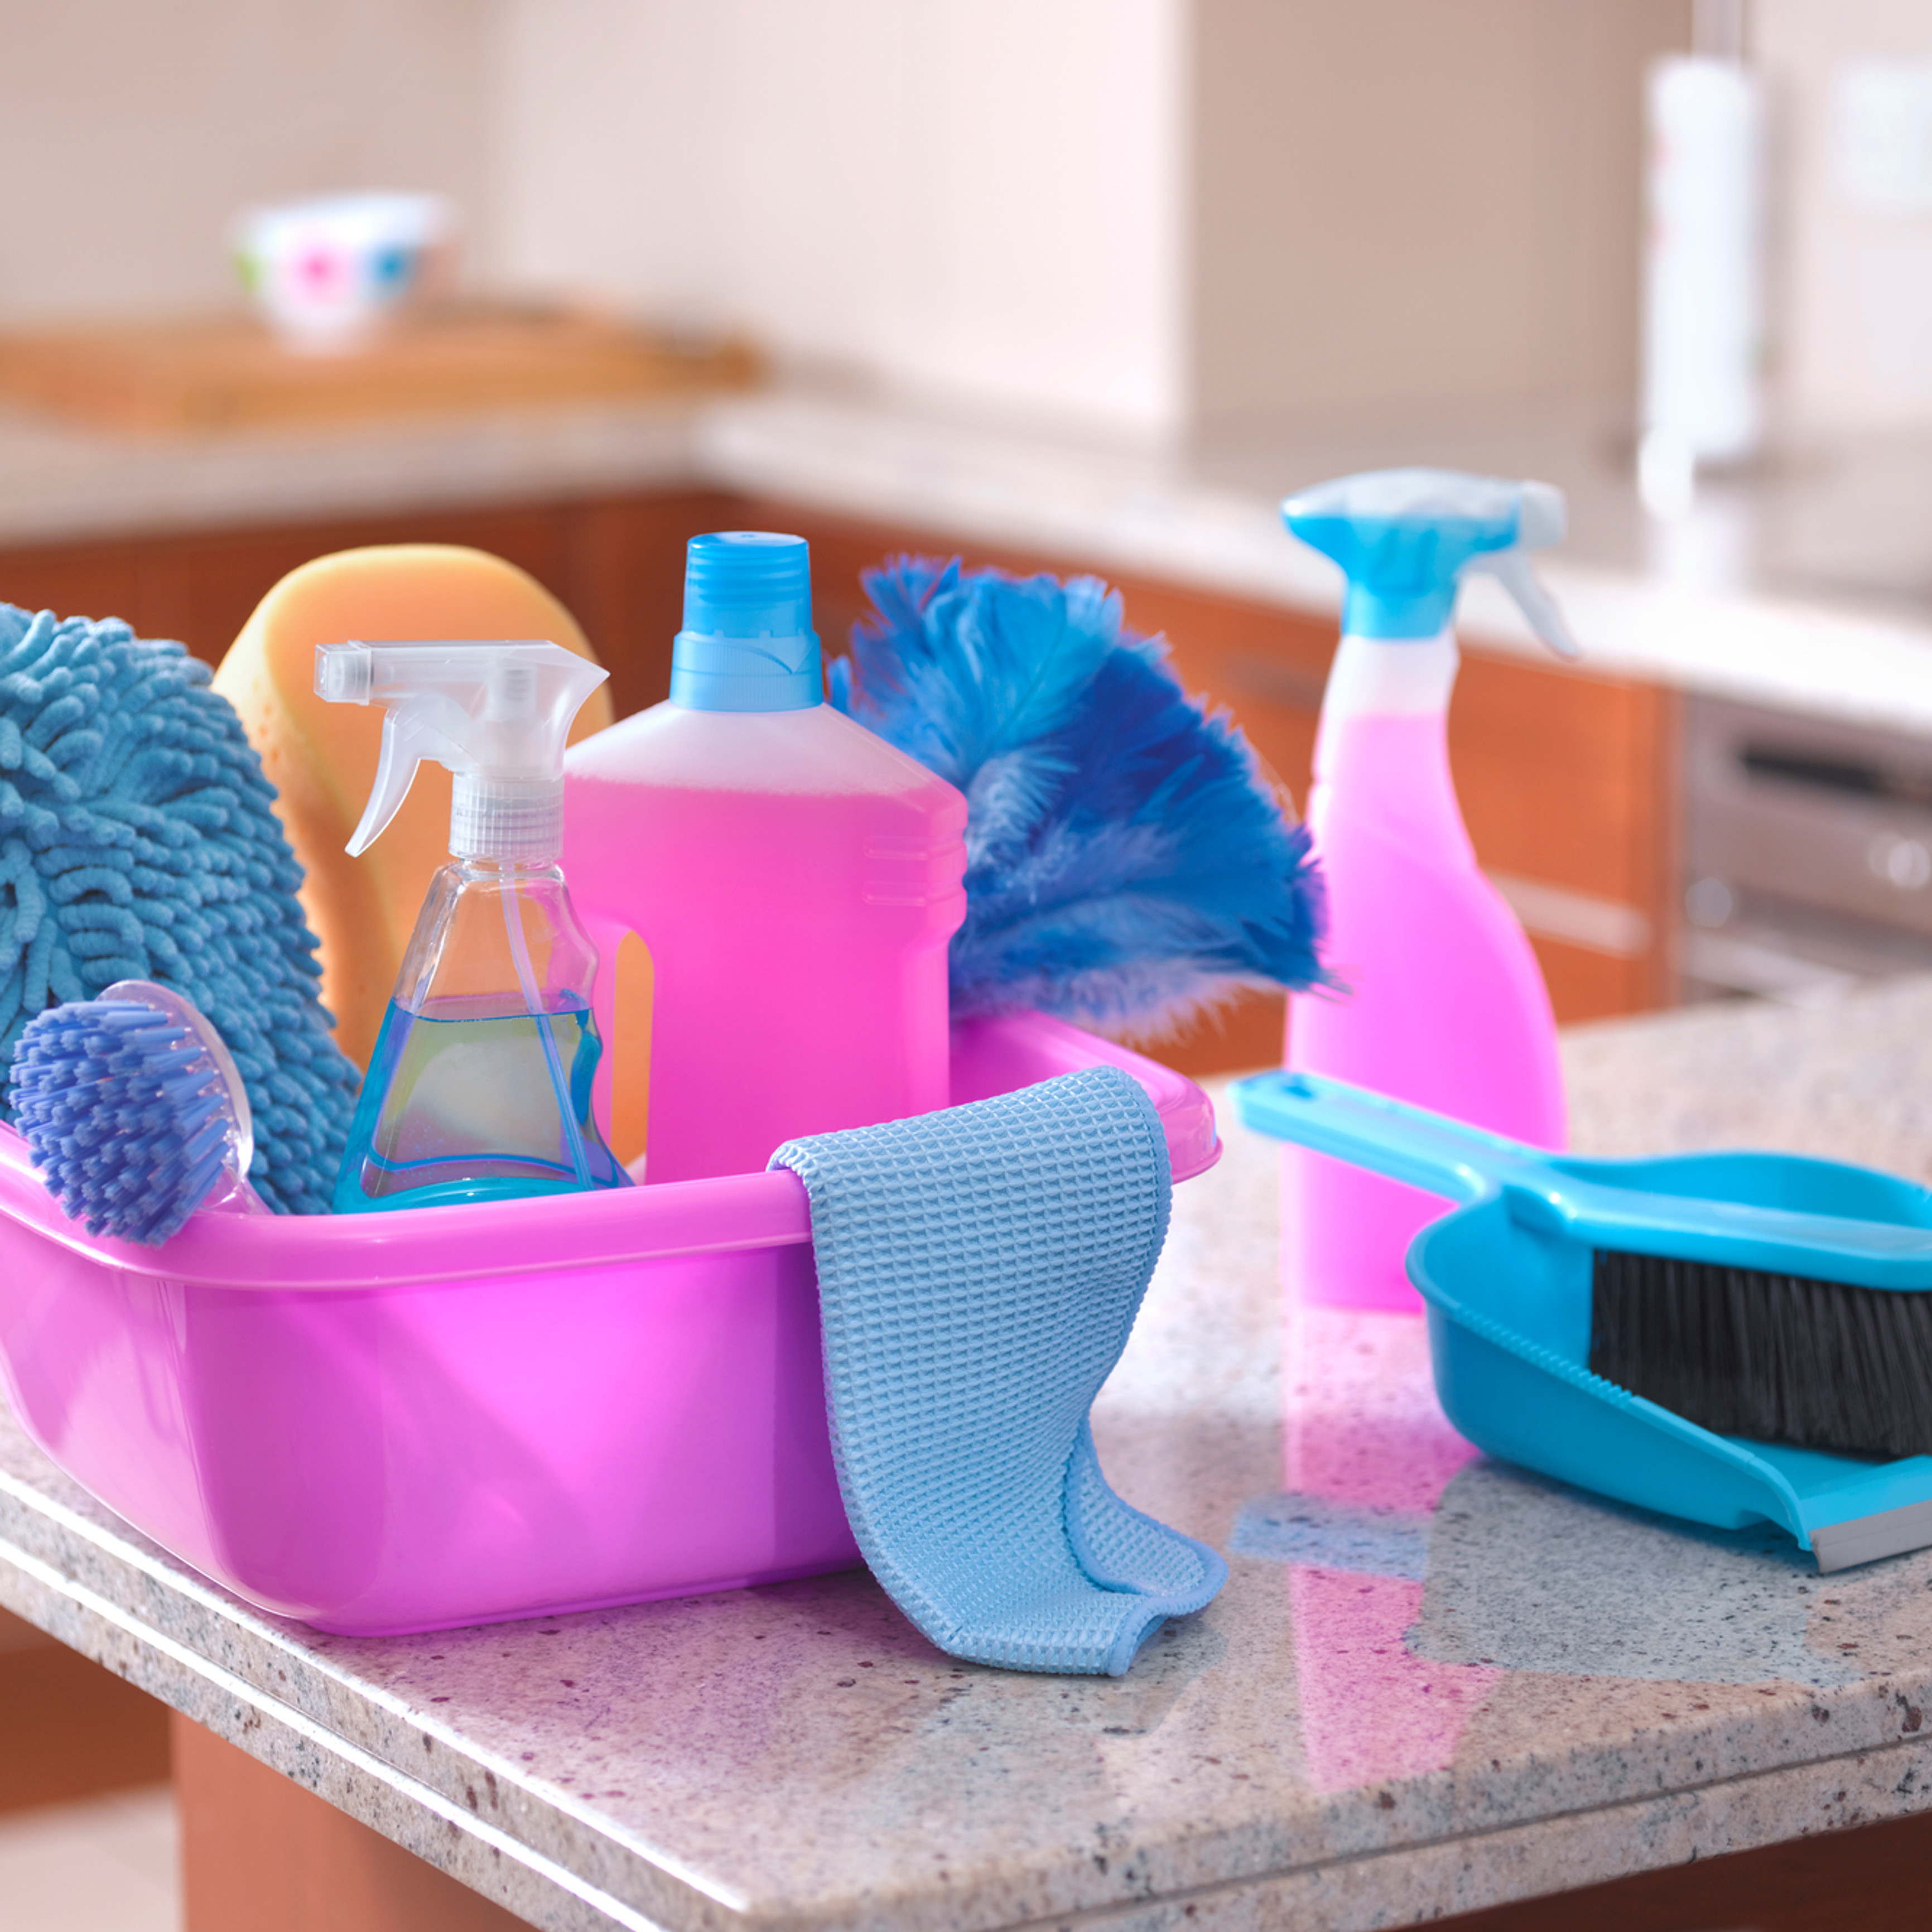 Senior Cleaning Service